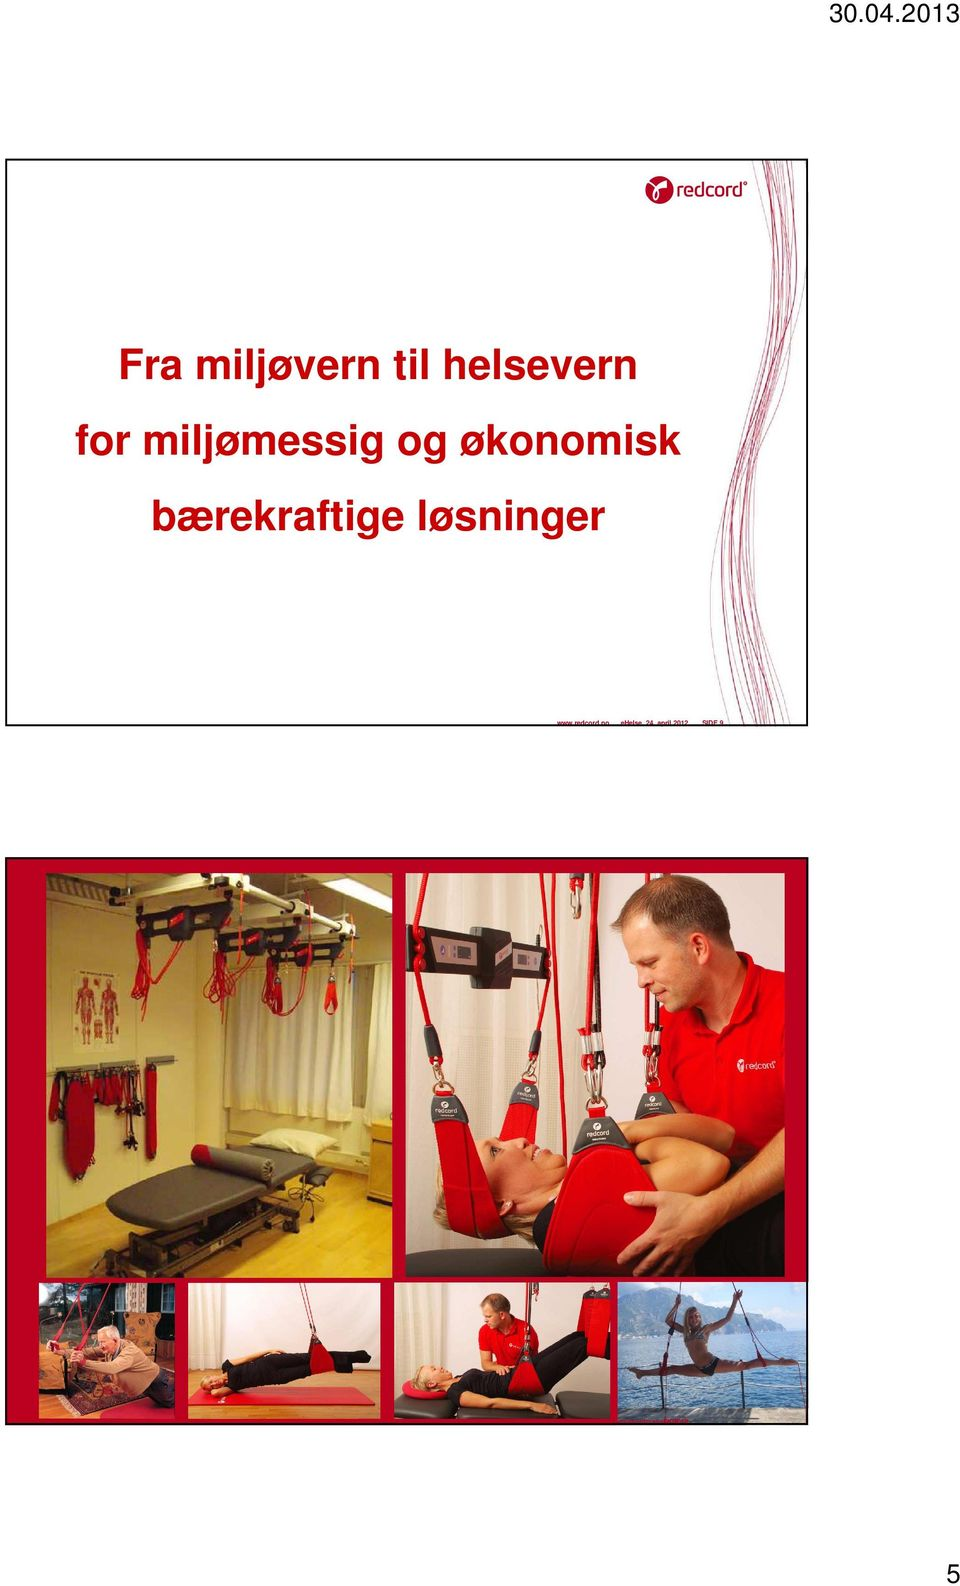 redcord.no ehelse 24.